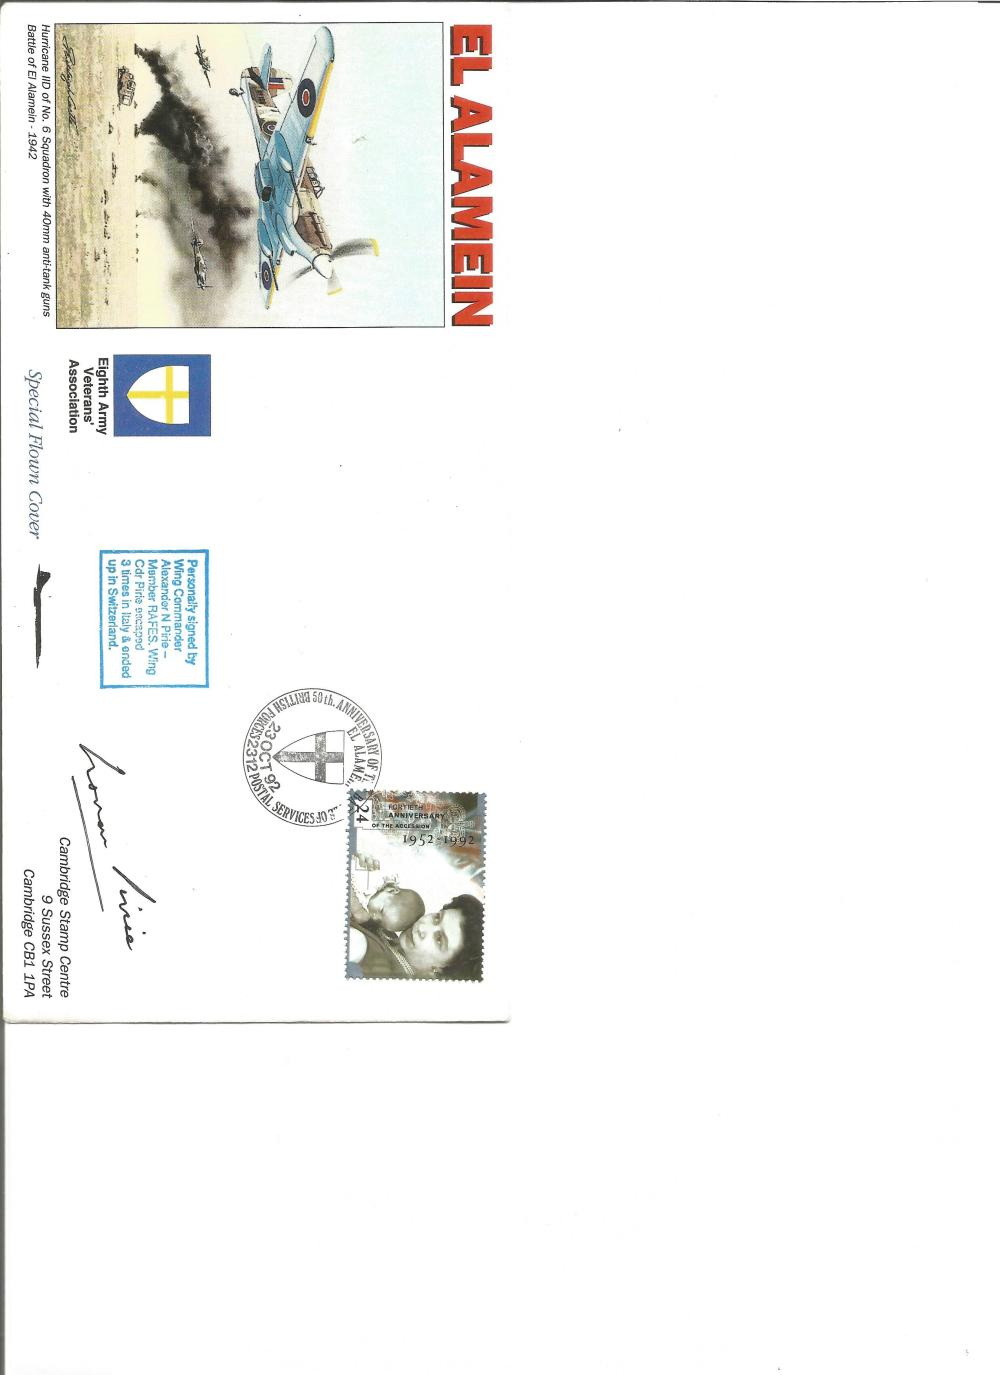 Wg Comm Alexander Pirie signed El Alamein cover. Good Condition. All signed pieces come with a